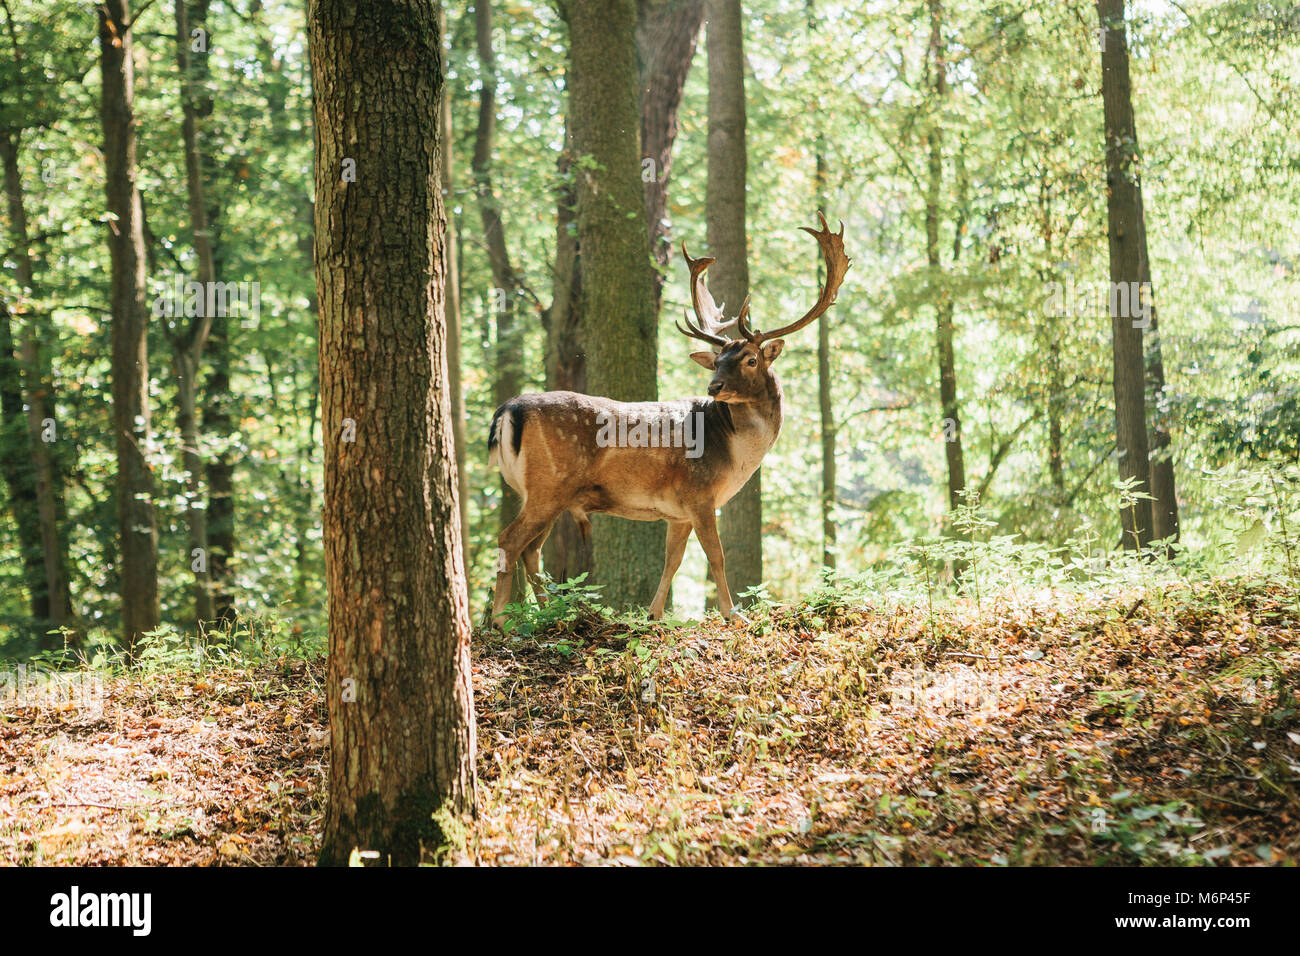 Beautiful deer with branched horns stands on a hill in an autumn forest among trees. Stock Photo